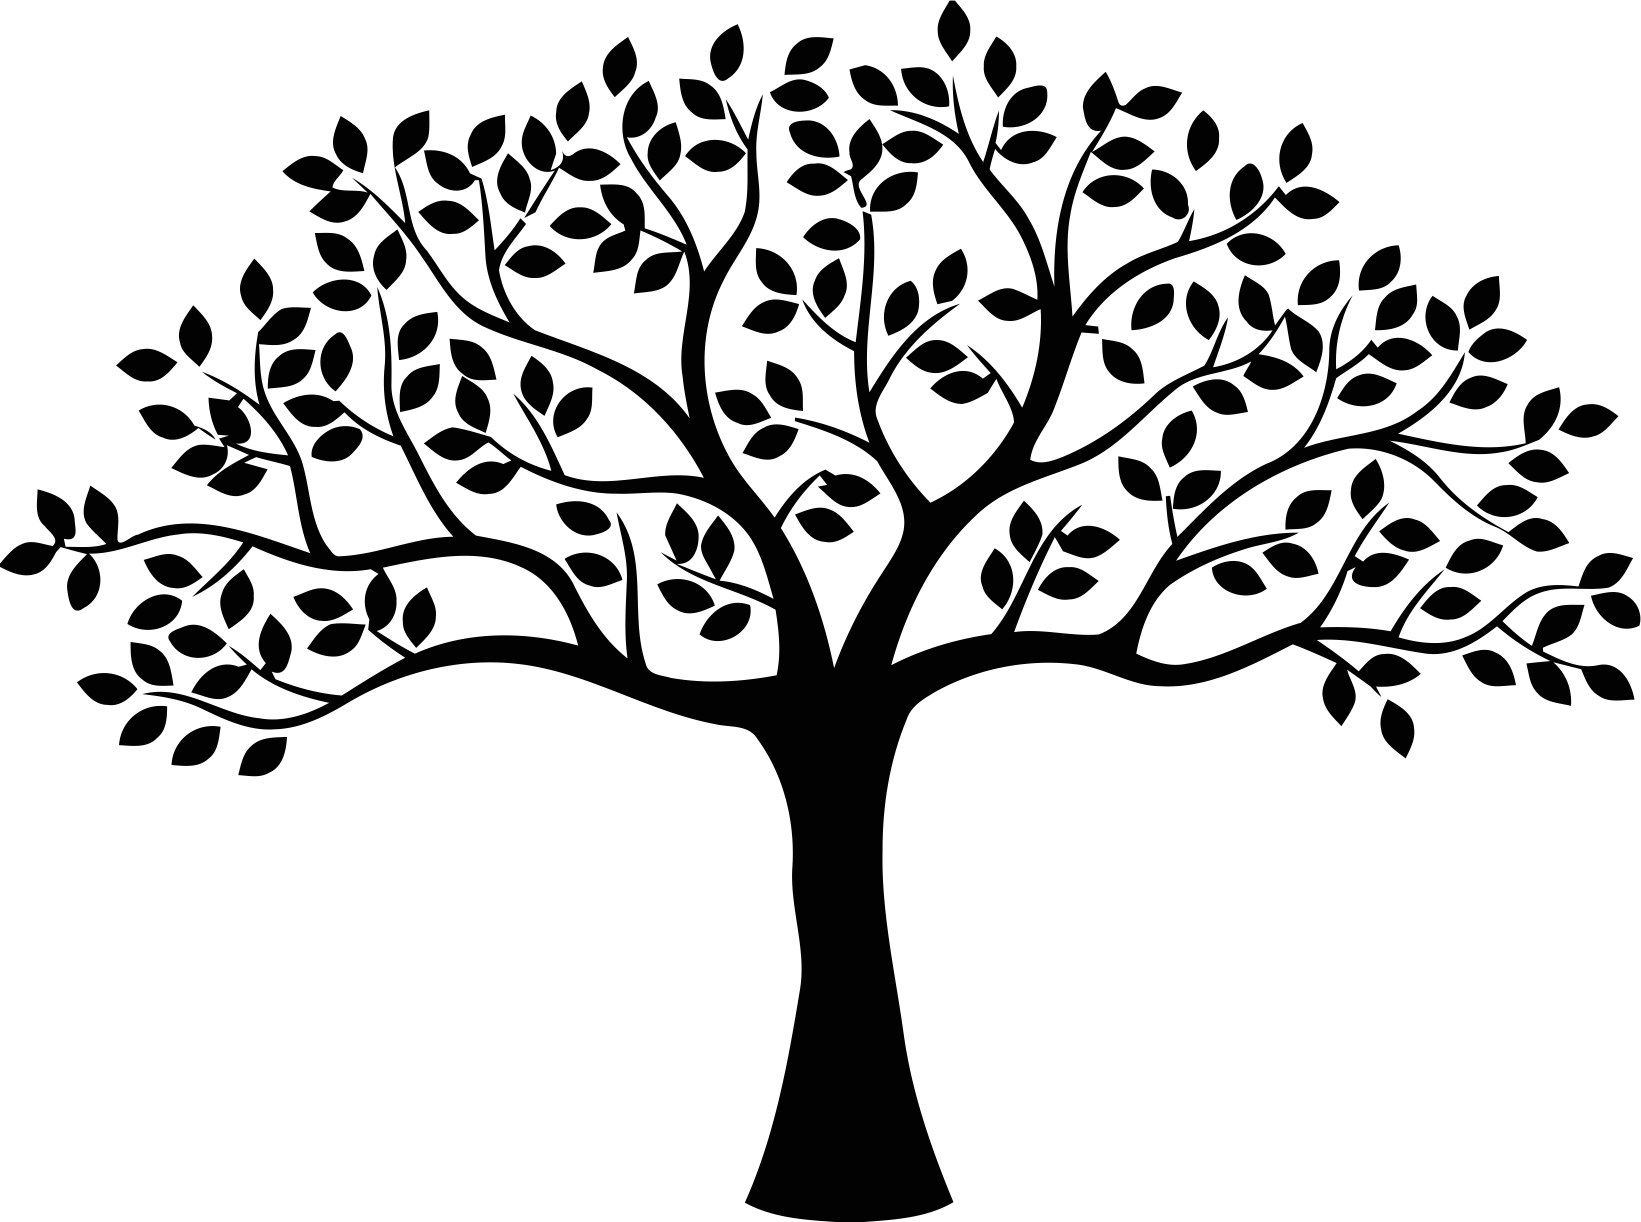 Vector clipart cdr file clipart free Decor Tree Free Vector cdr Download | Free Vectors .cdr ... clipart free